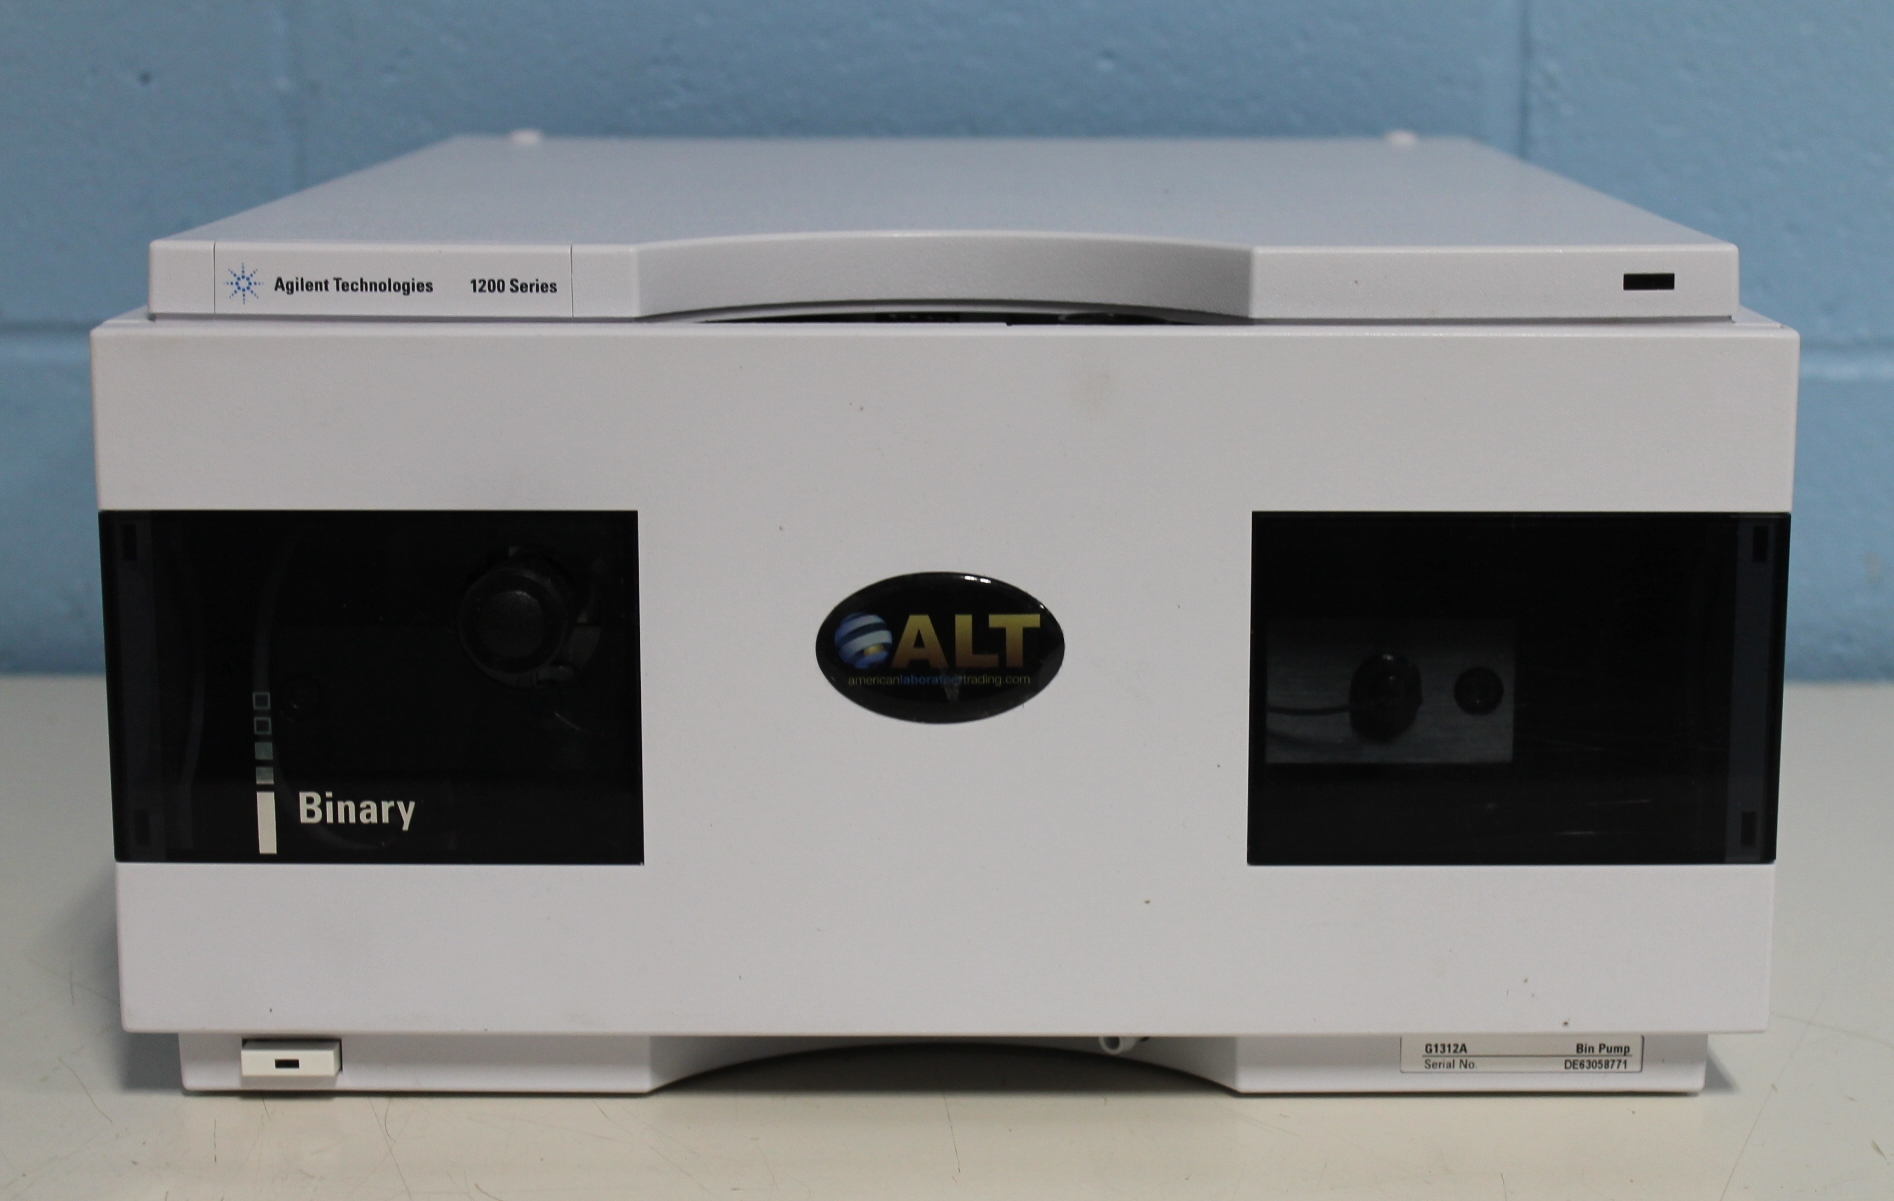 Agilent Technologies 1200 Series G1312A Binary Pump Image